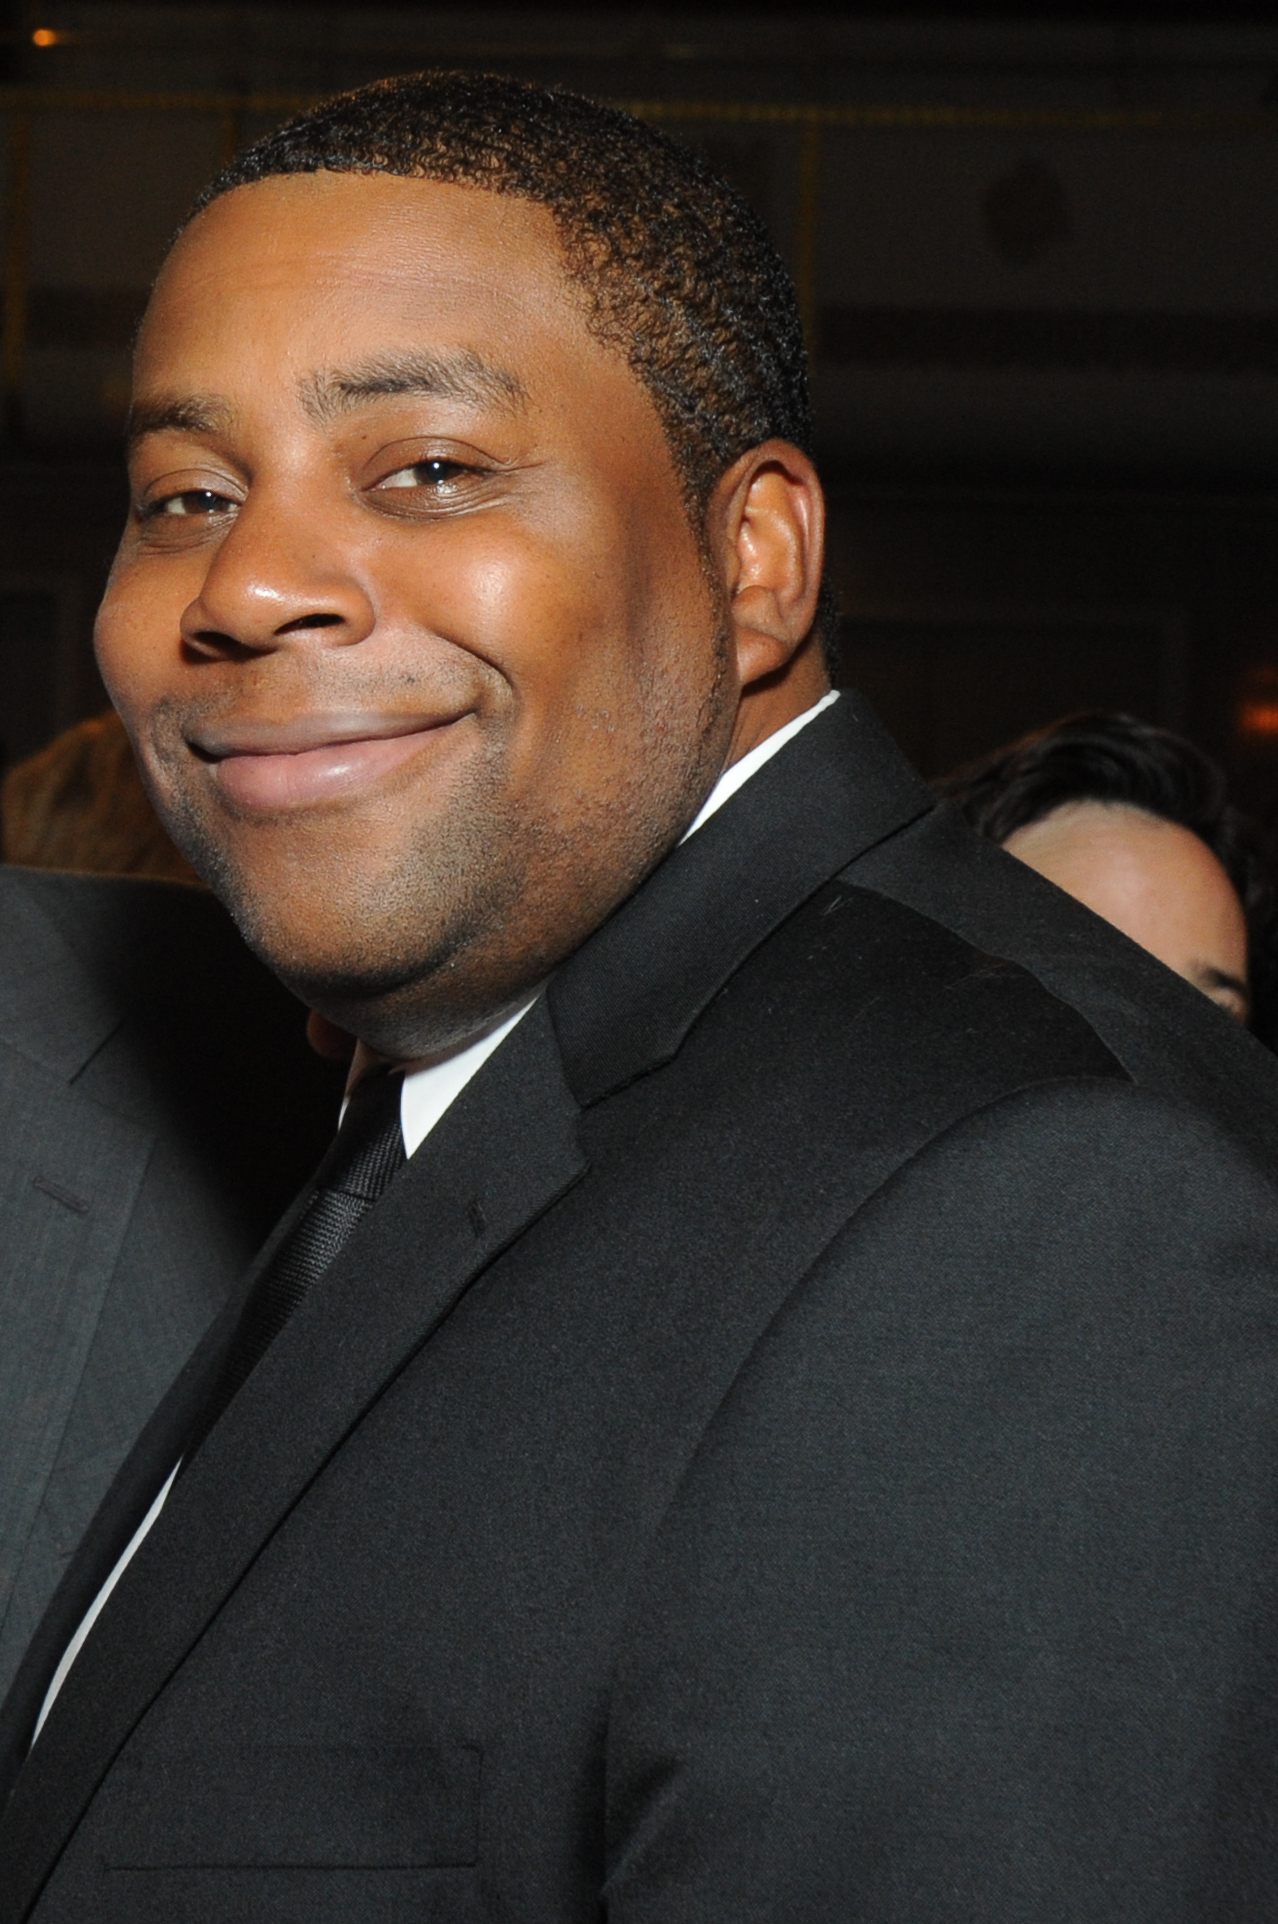 Kenan_Thompson_2012_%28cropped%29